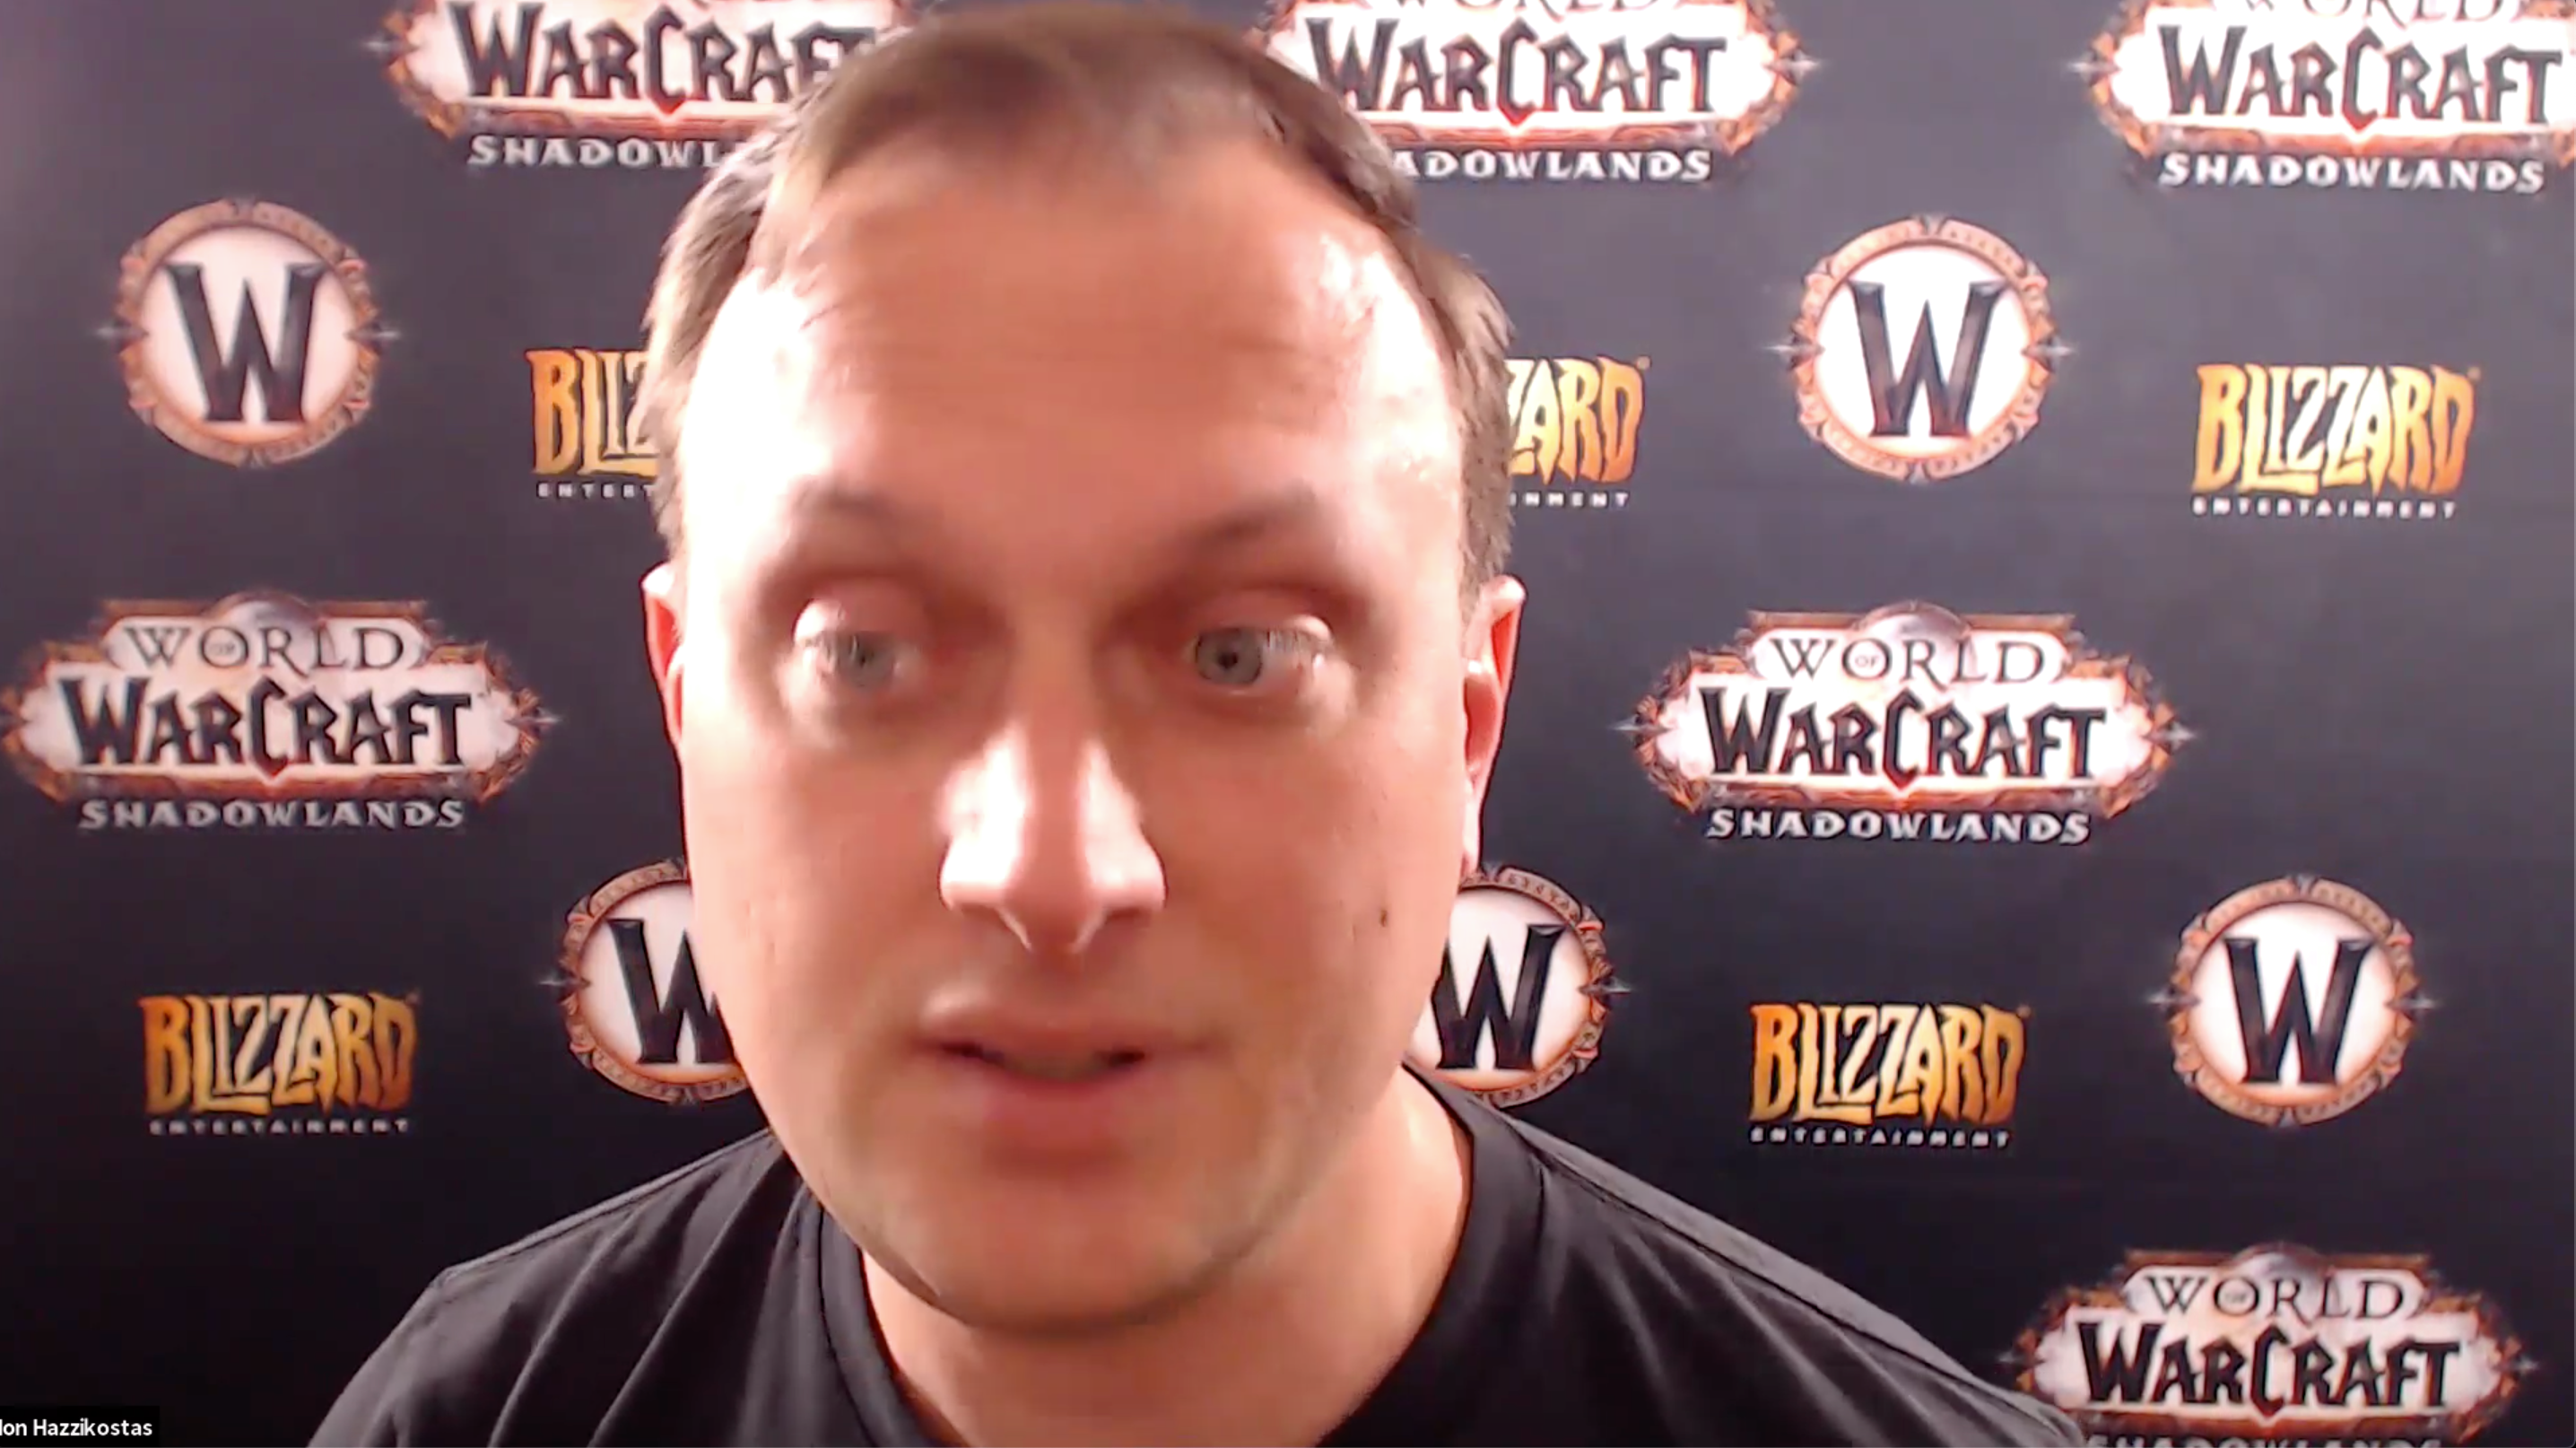 Hazzikostas during our Warcraft: Shadowlands 1:1 video interview.